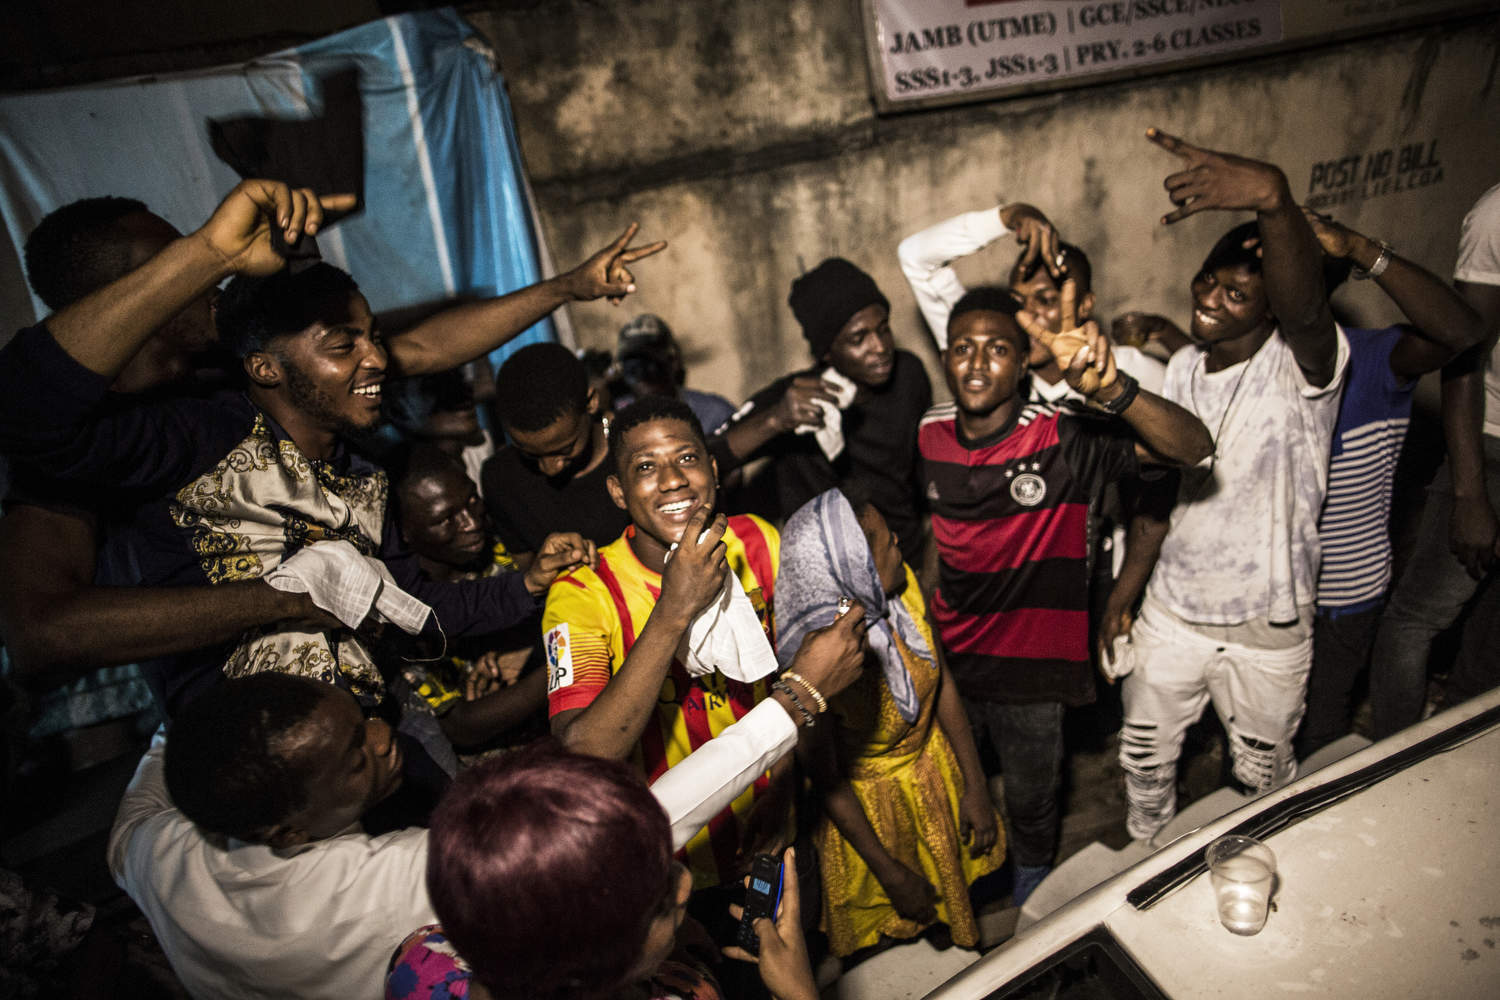 At a Lagos Island street party on a Friday night, young ambitious musicians practice their songs and dancers practice their move, all dreaming of fame and fortune.